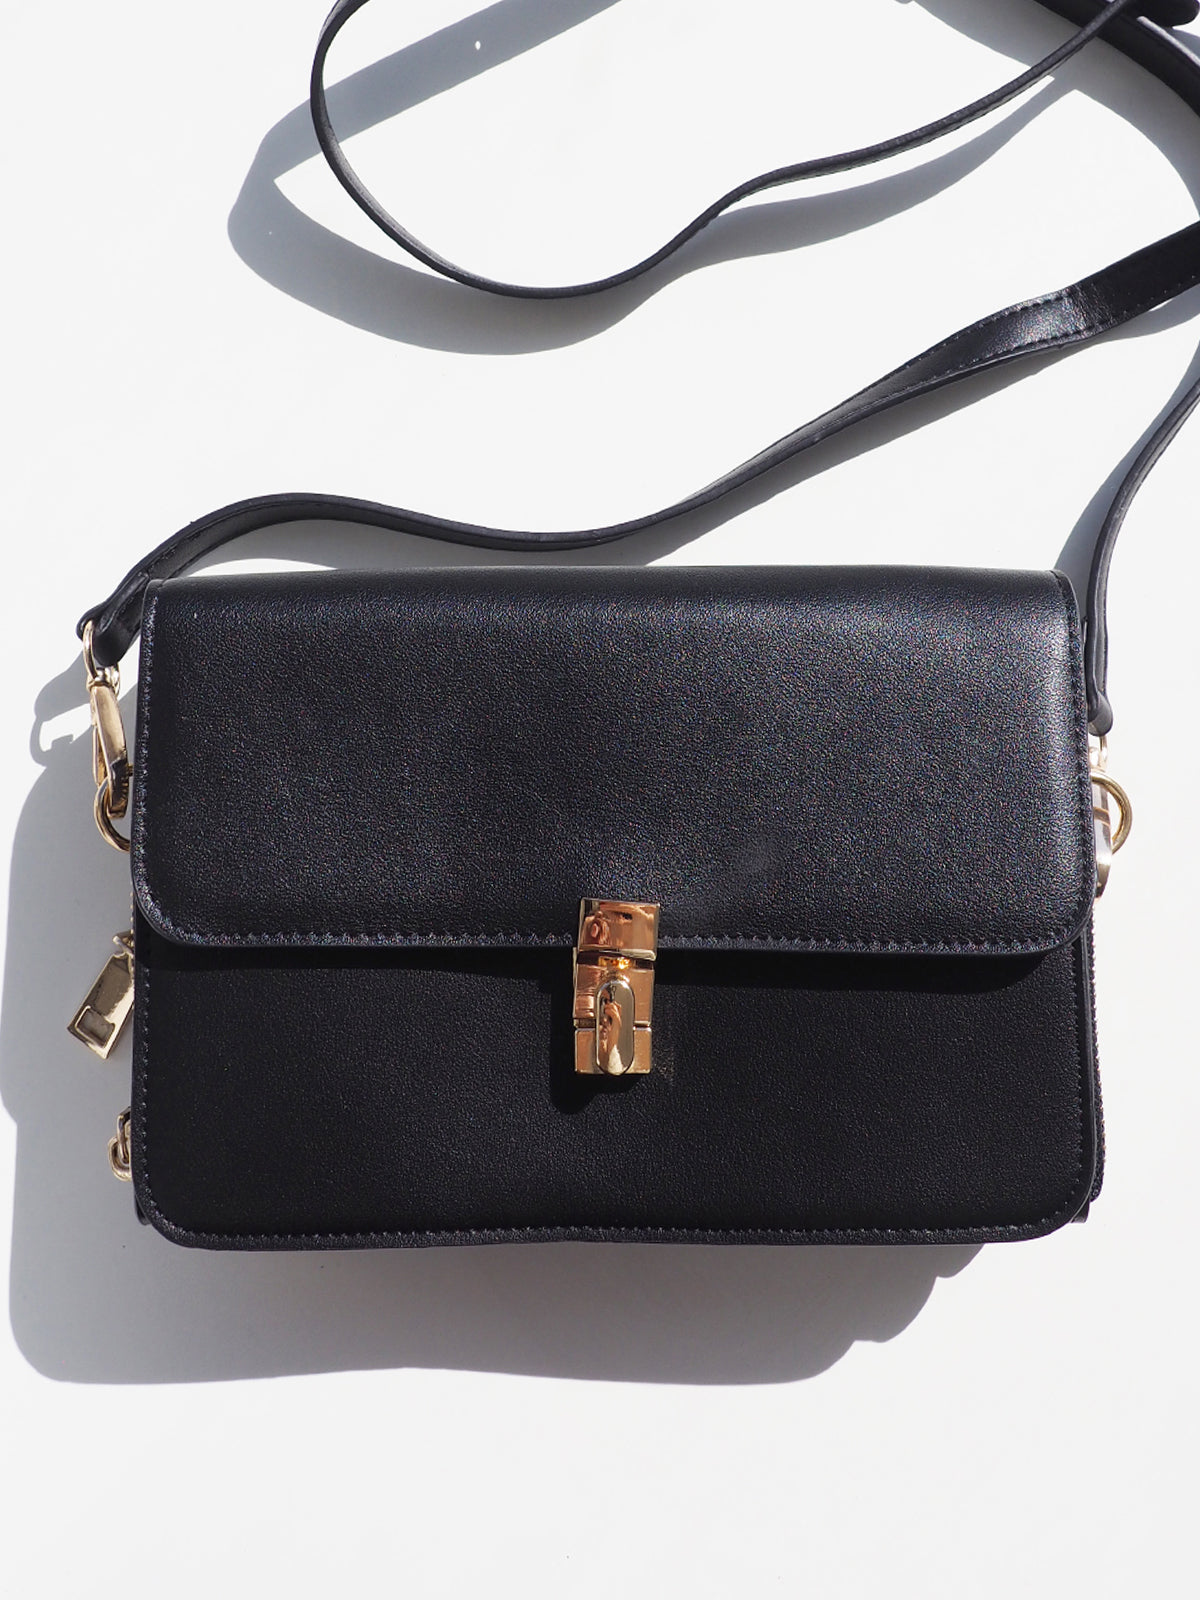 RHYTHM CITY CROSS BODY BAG IN BLACK